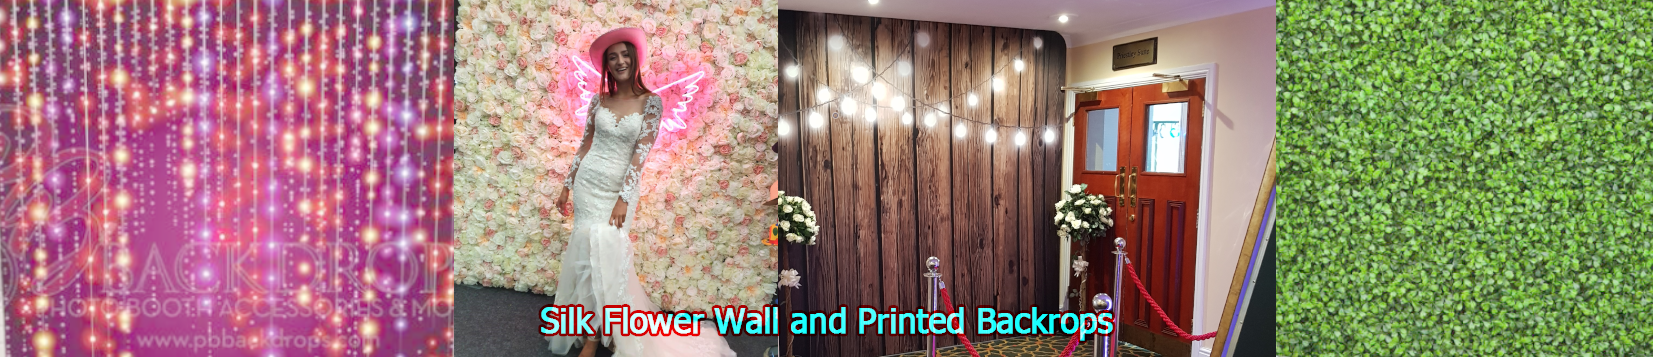 Silk Flower Wall and Printed Backdrop Hire